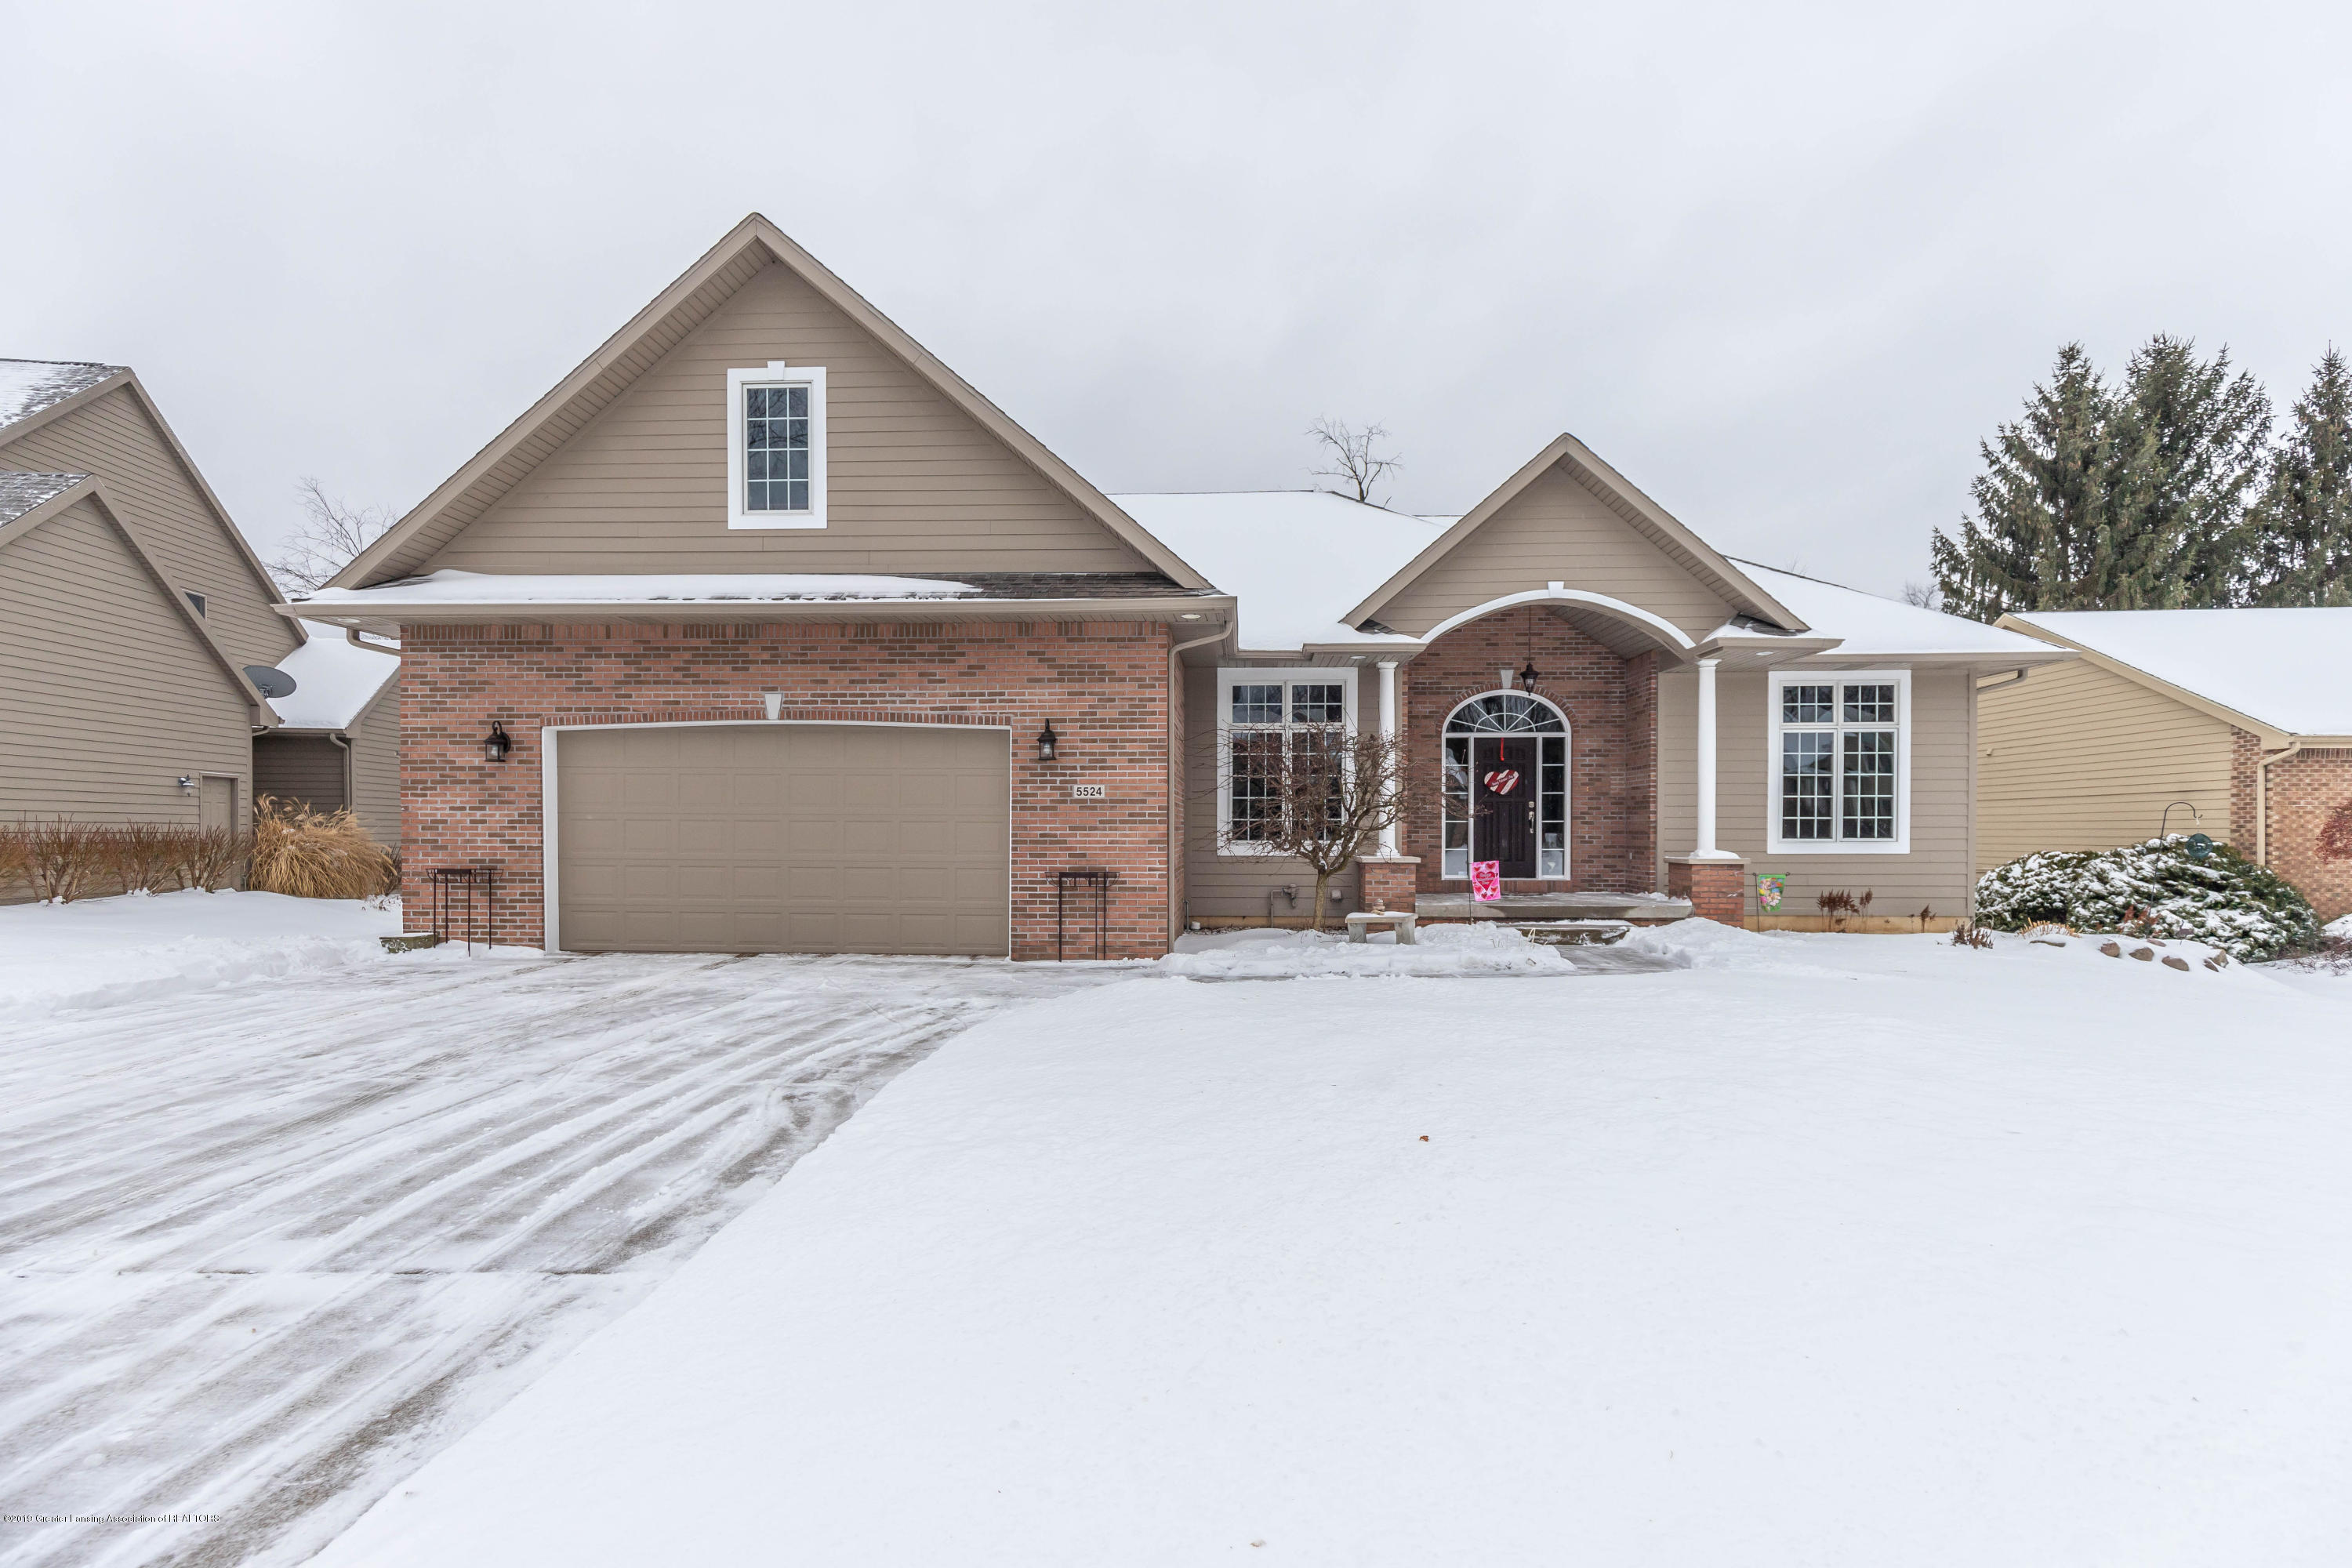 5524 Silverleaf Ct - Exterior Front - 1